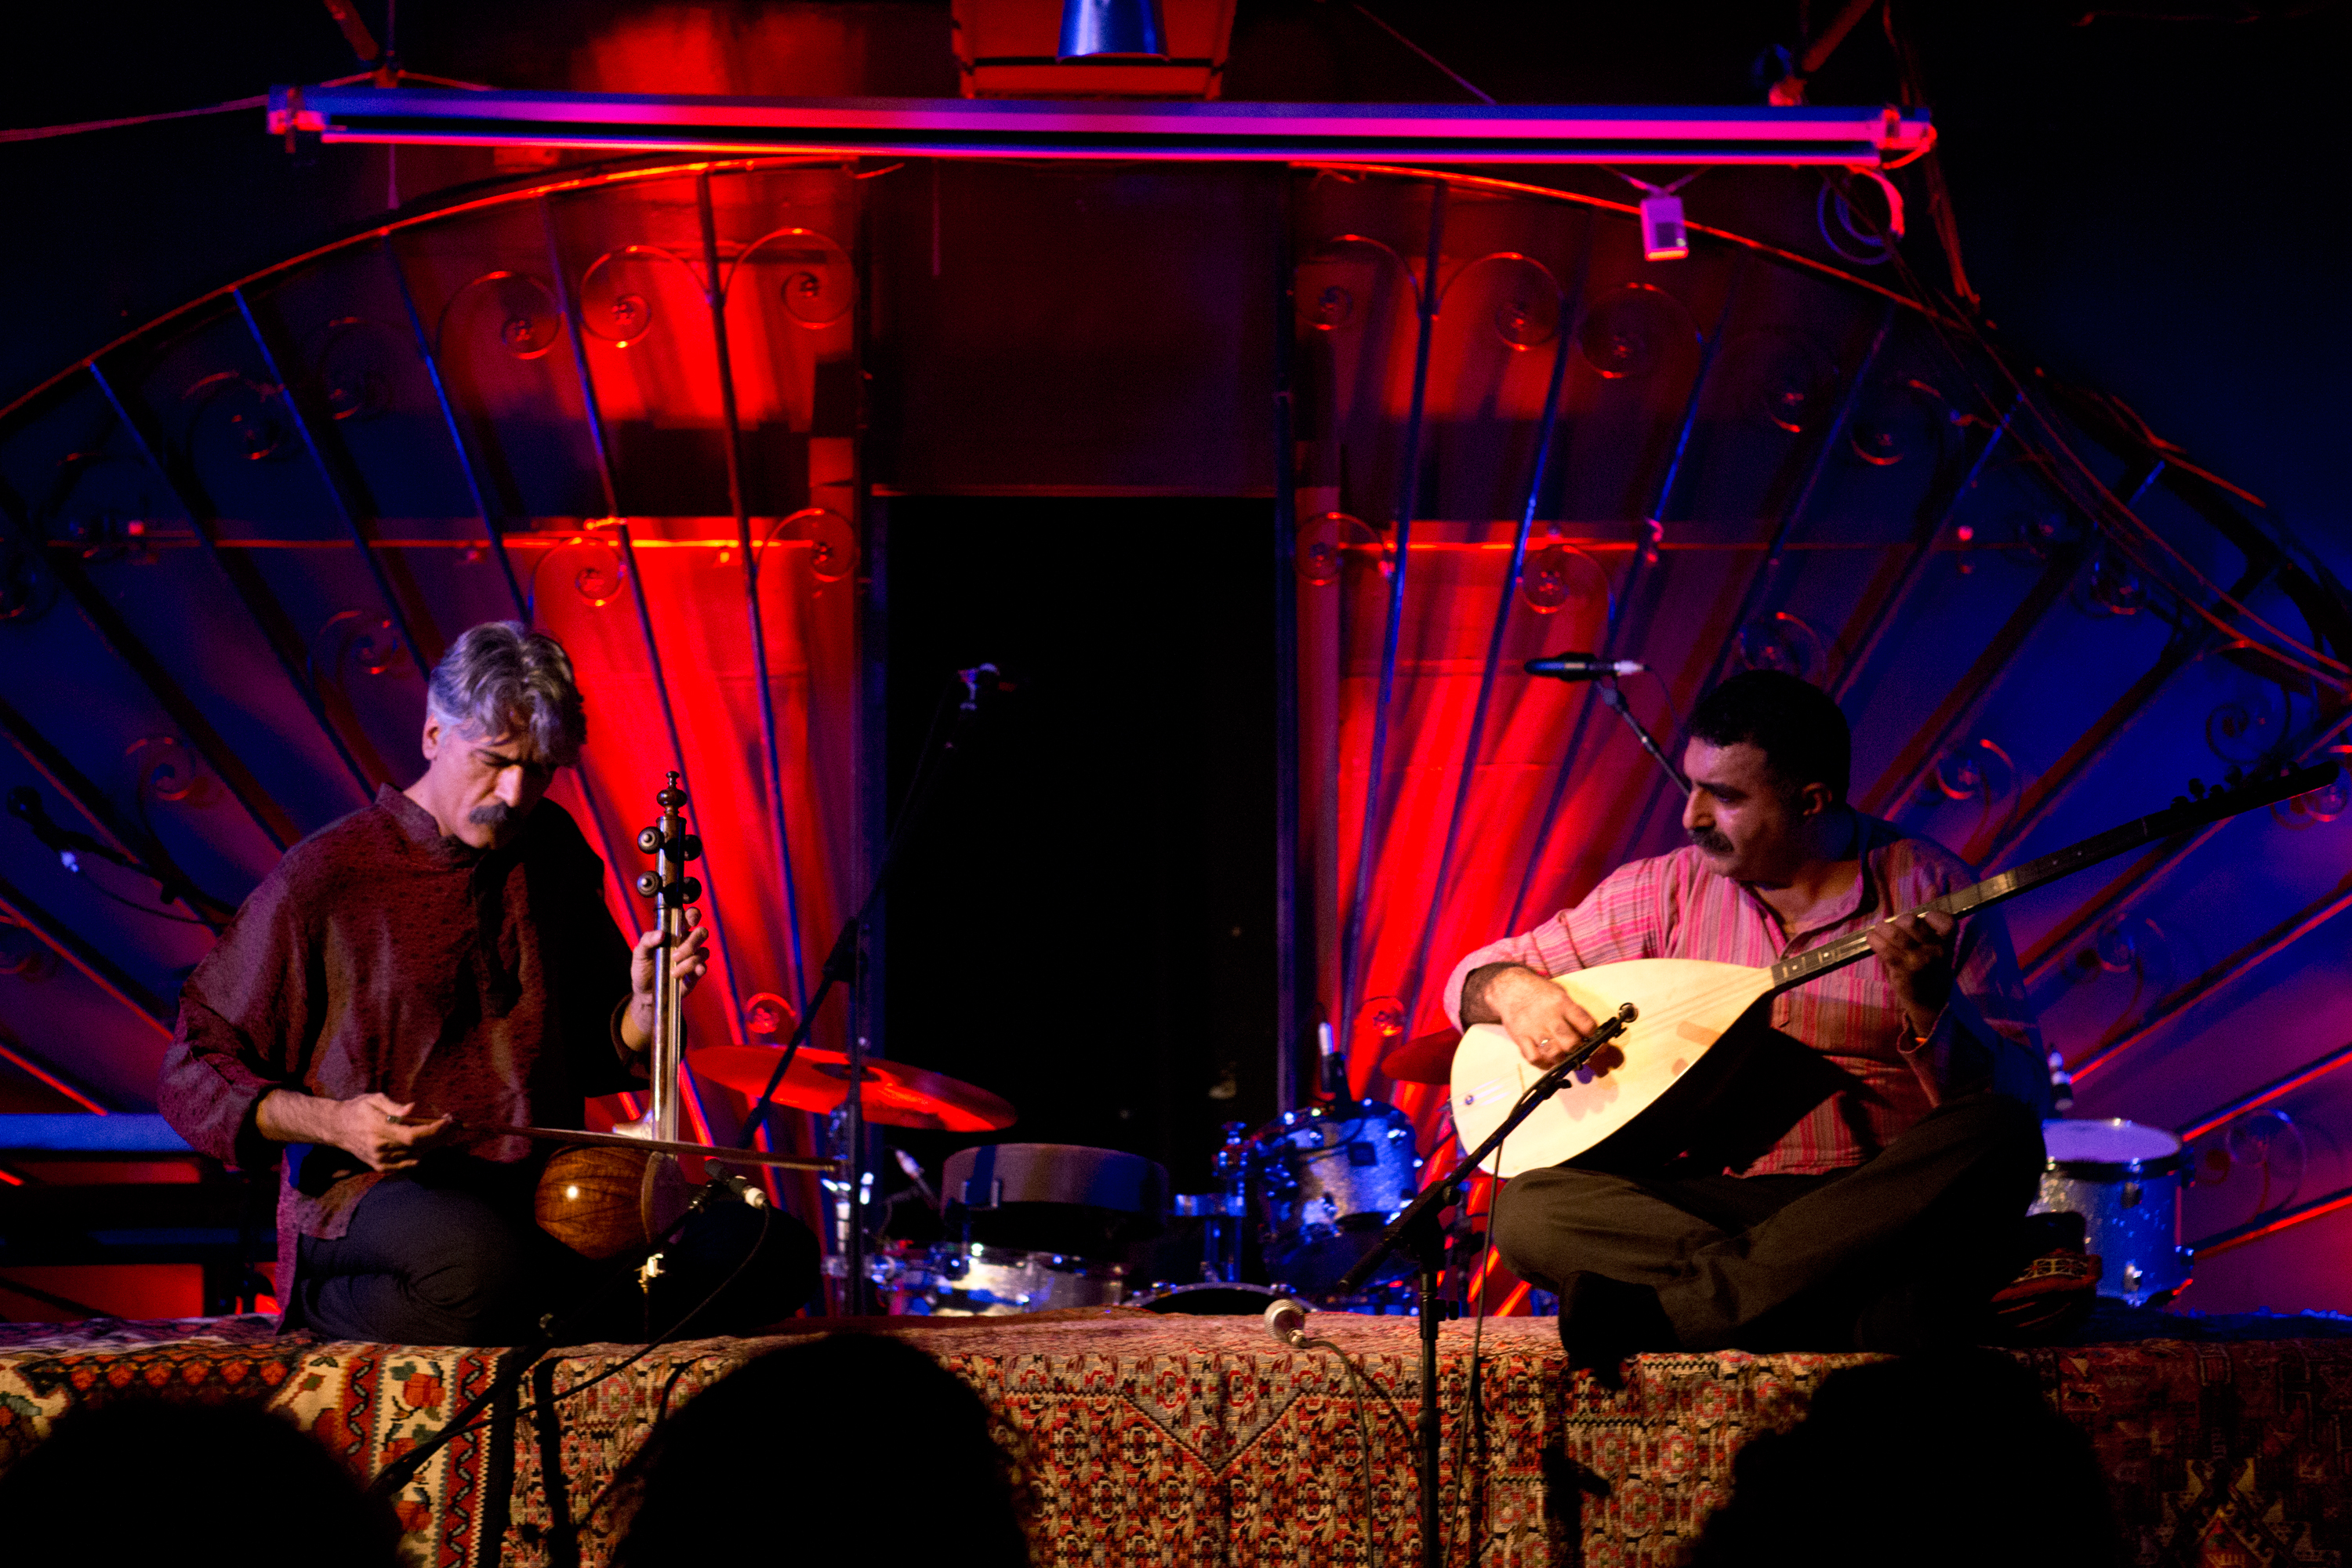 Persian virtuoso Kayhan Kalhor and Turkish master artist Erdal Erzincan teamed up for a beautiful performance on the Marlin Room stage. While it wasn't the first time they played together, their unique melding of talents led to a mesmerizing performance filled with flowing improvisations.